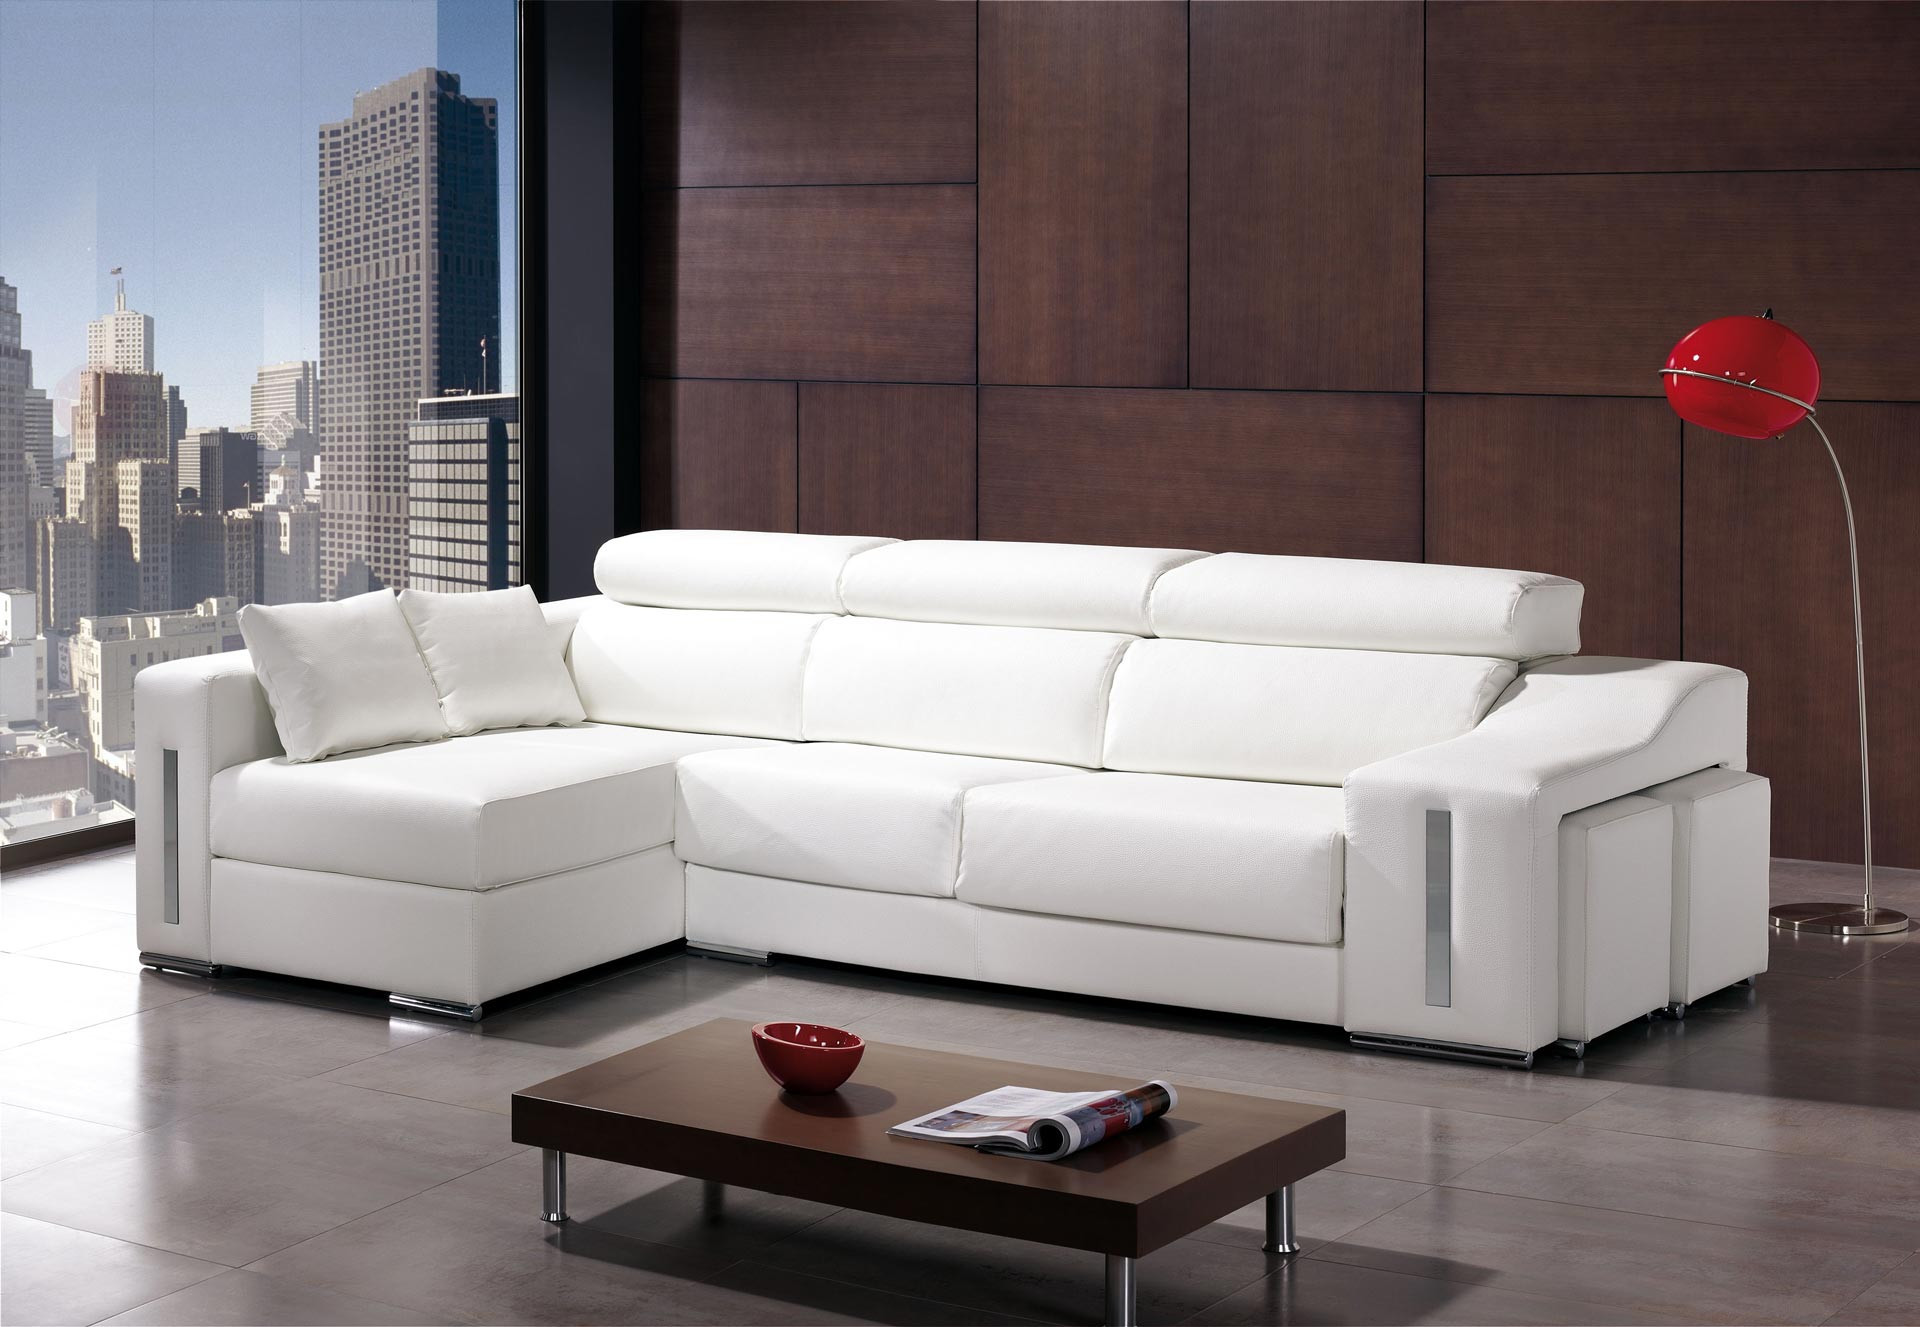 Sofa Chaise Longue 4 Plazas Impresionante sofá Chaise Longue Blanca 4 Plazas Edimburgo Of 47  Único sofa Chaise Longue 4 Plazas